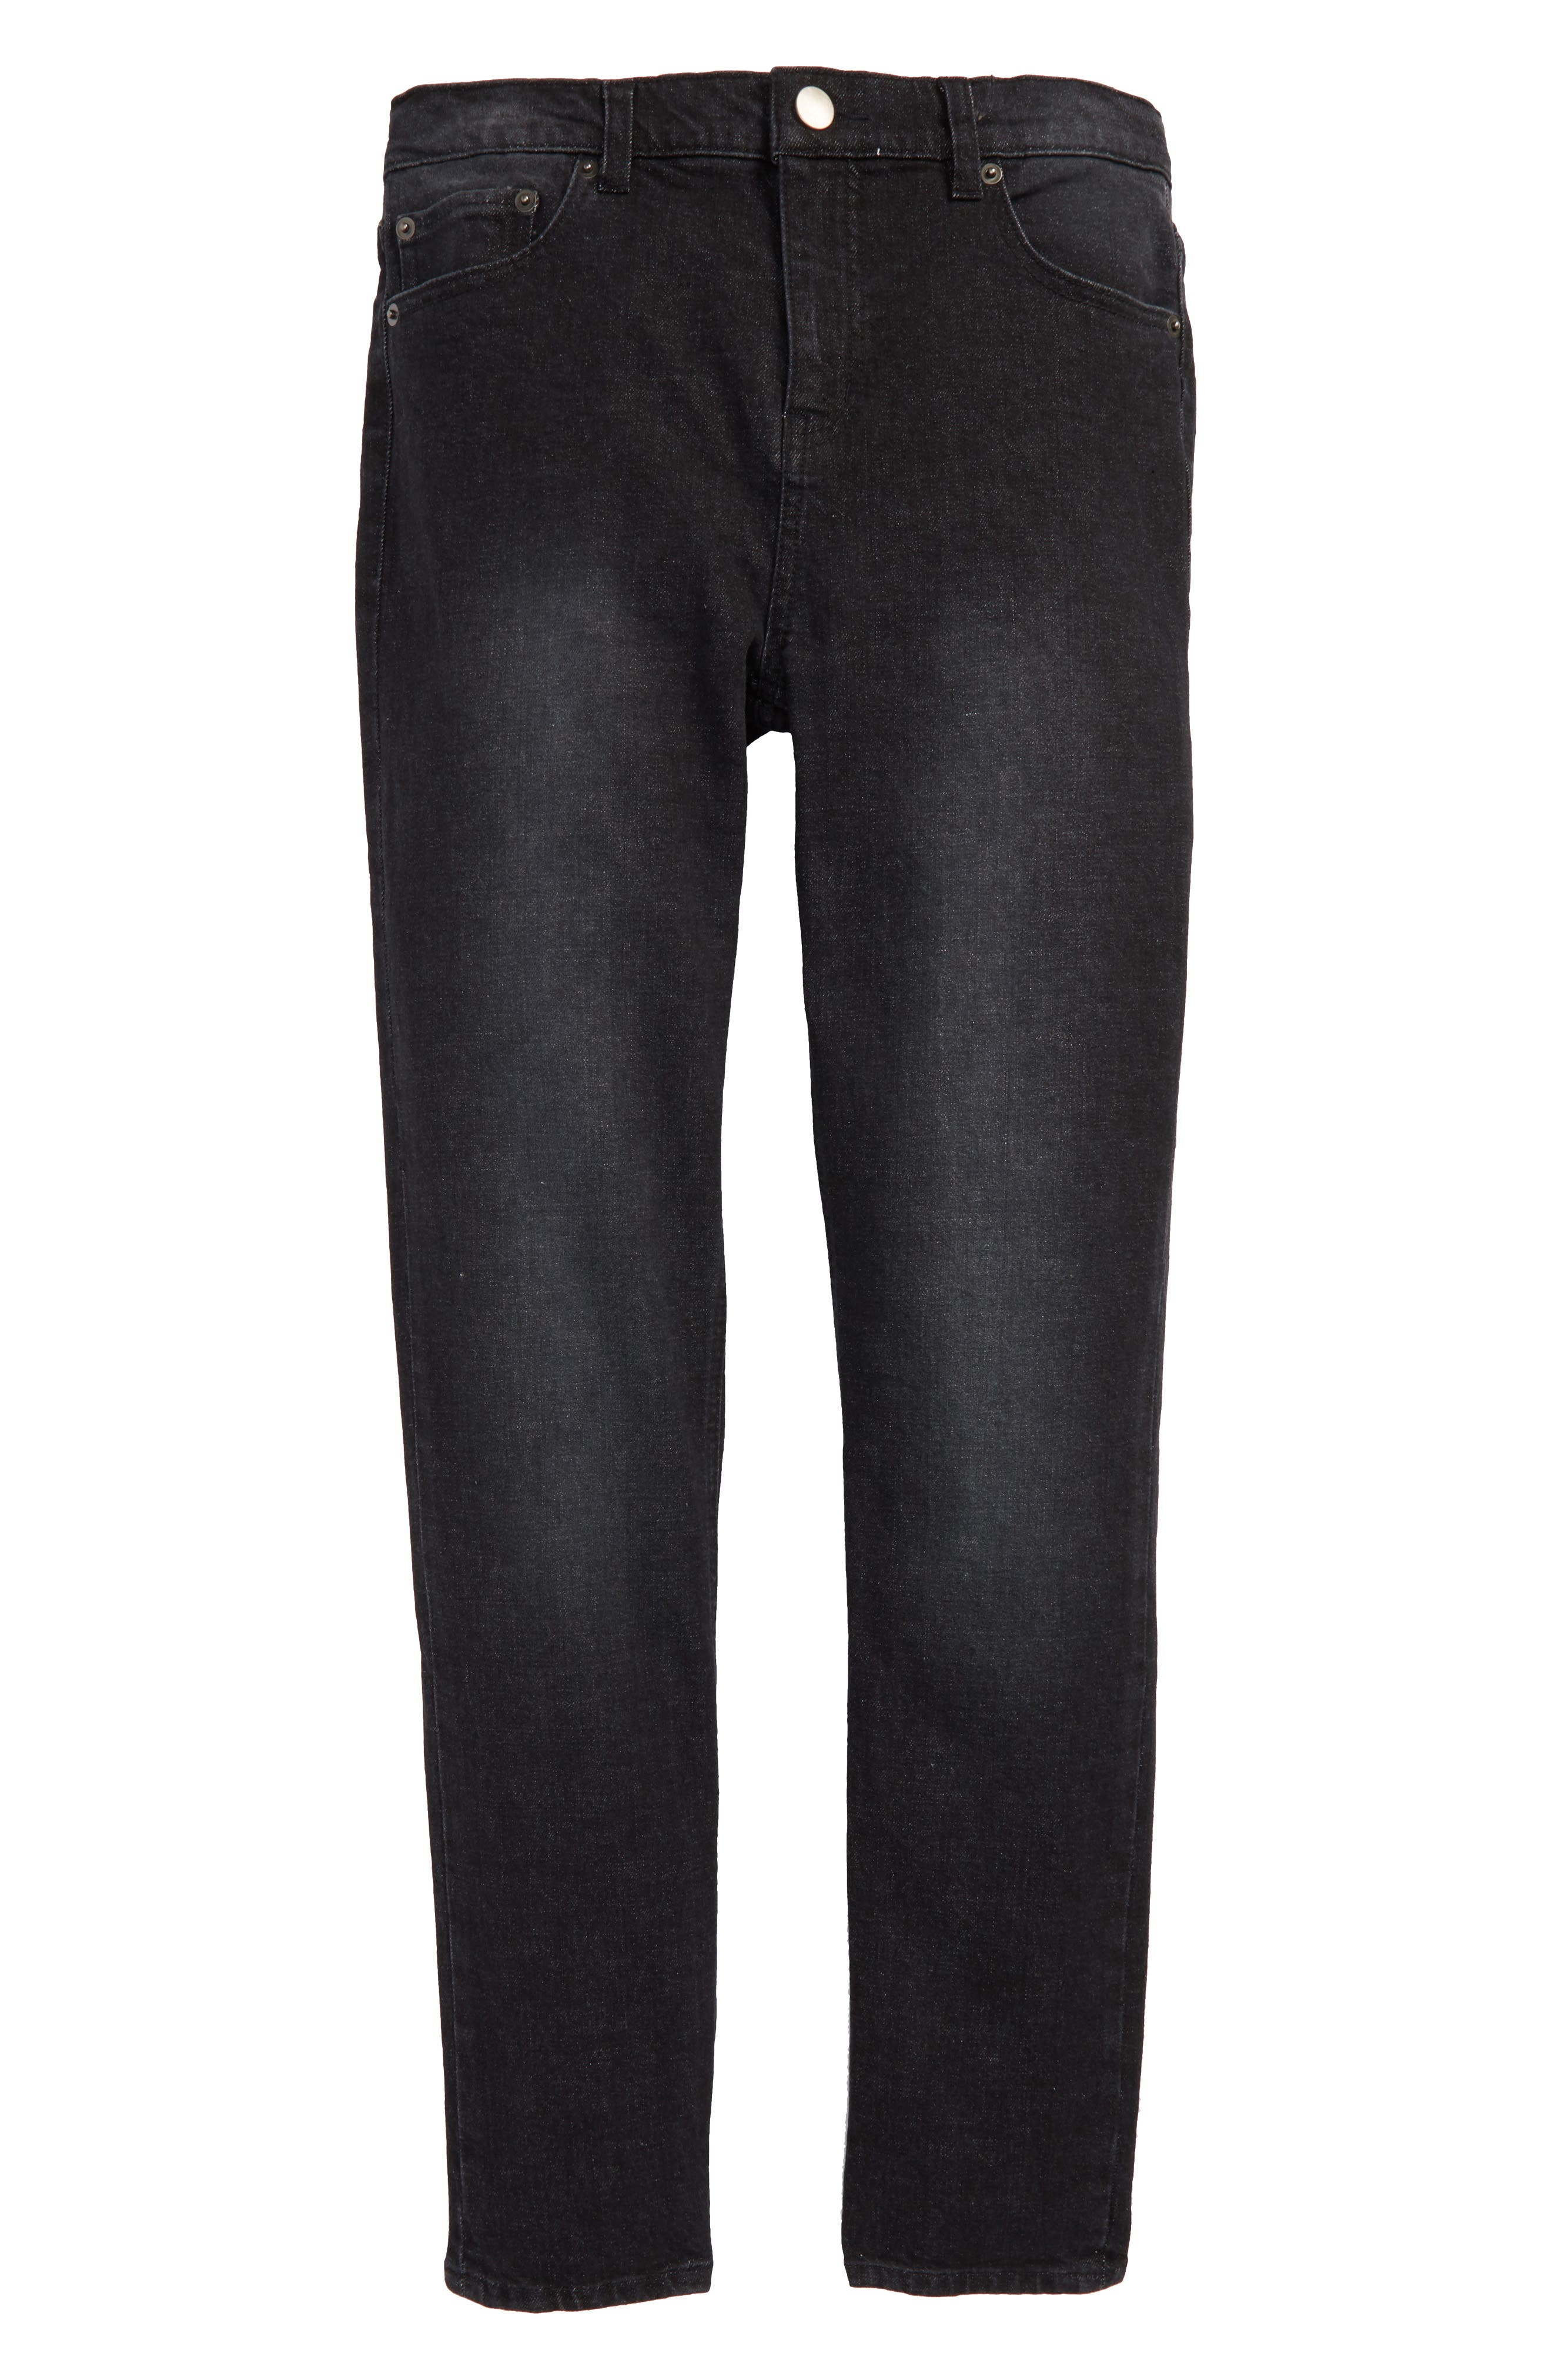 5th and Ryder Slim Fit Tapered Jeans (Big Boys)